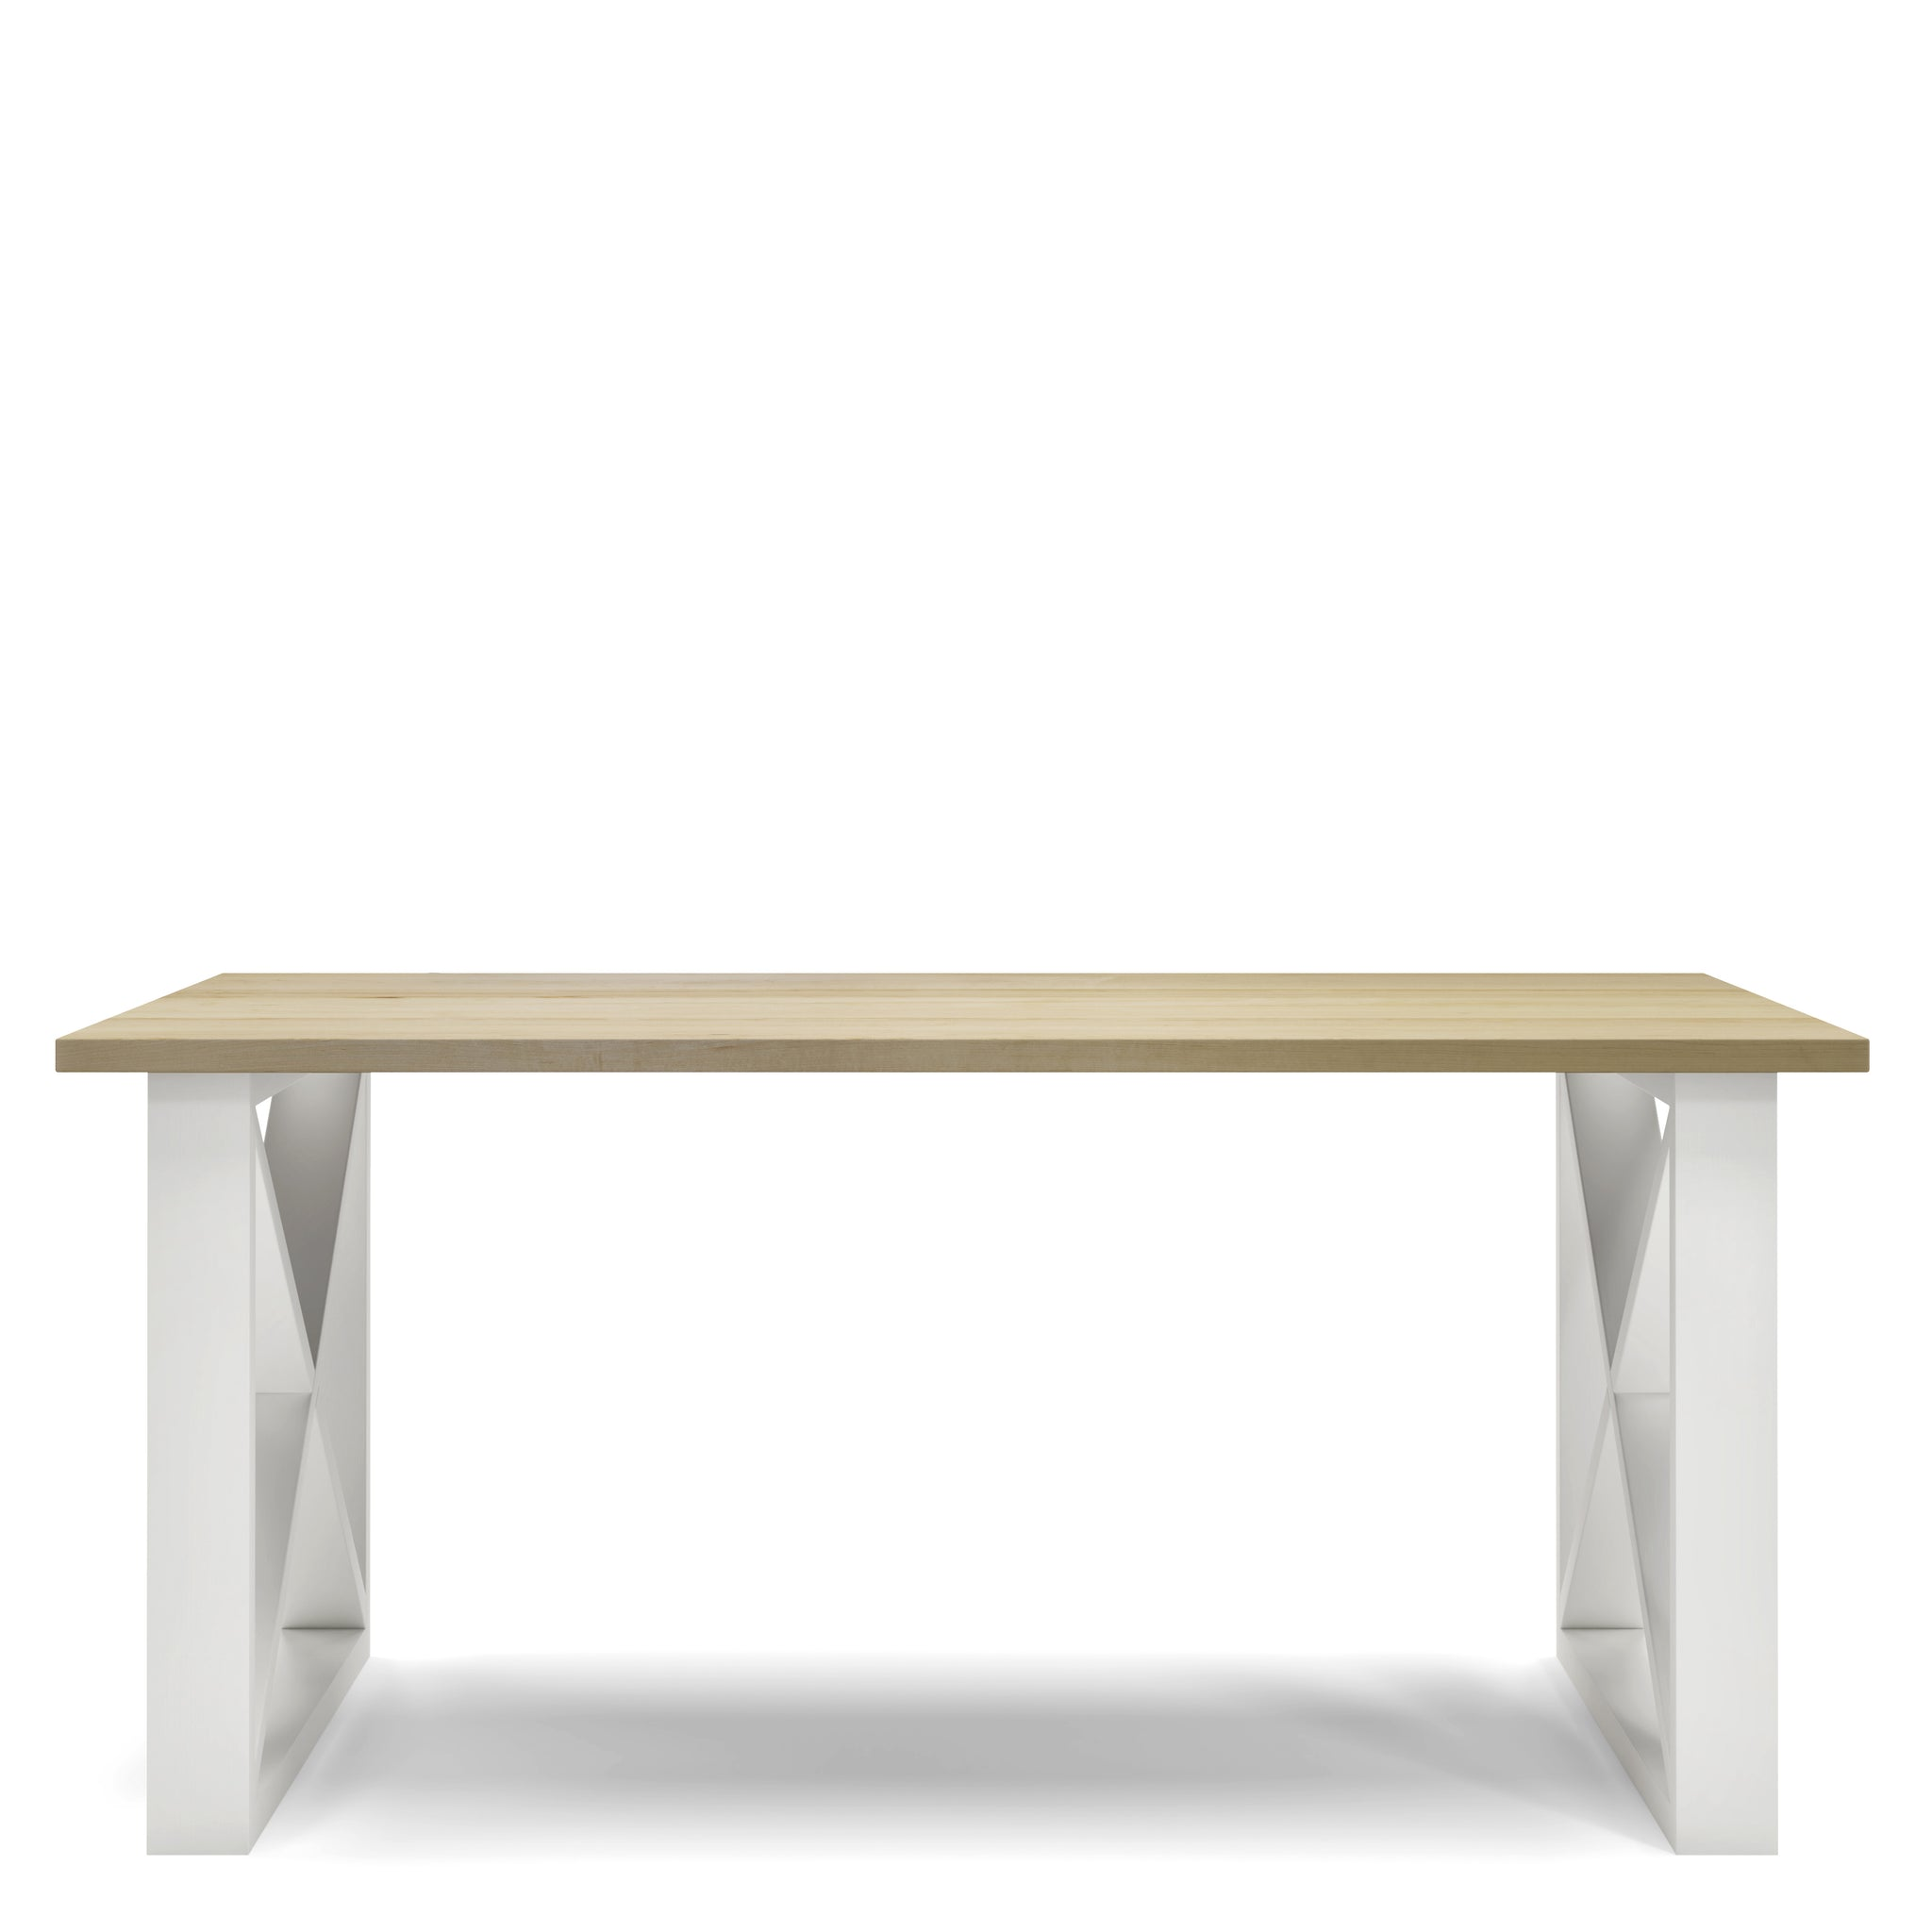 5- La table Hampton en bois massif